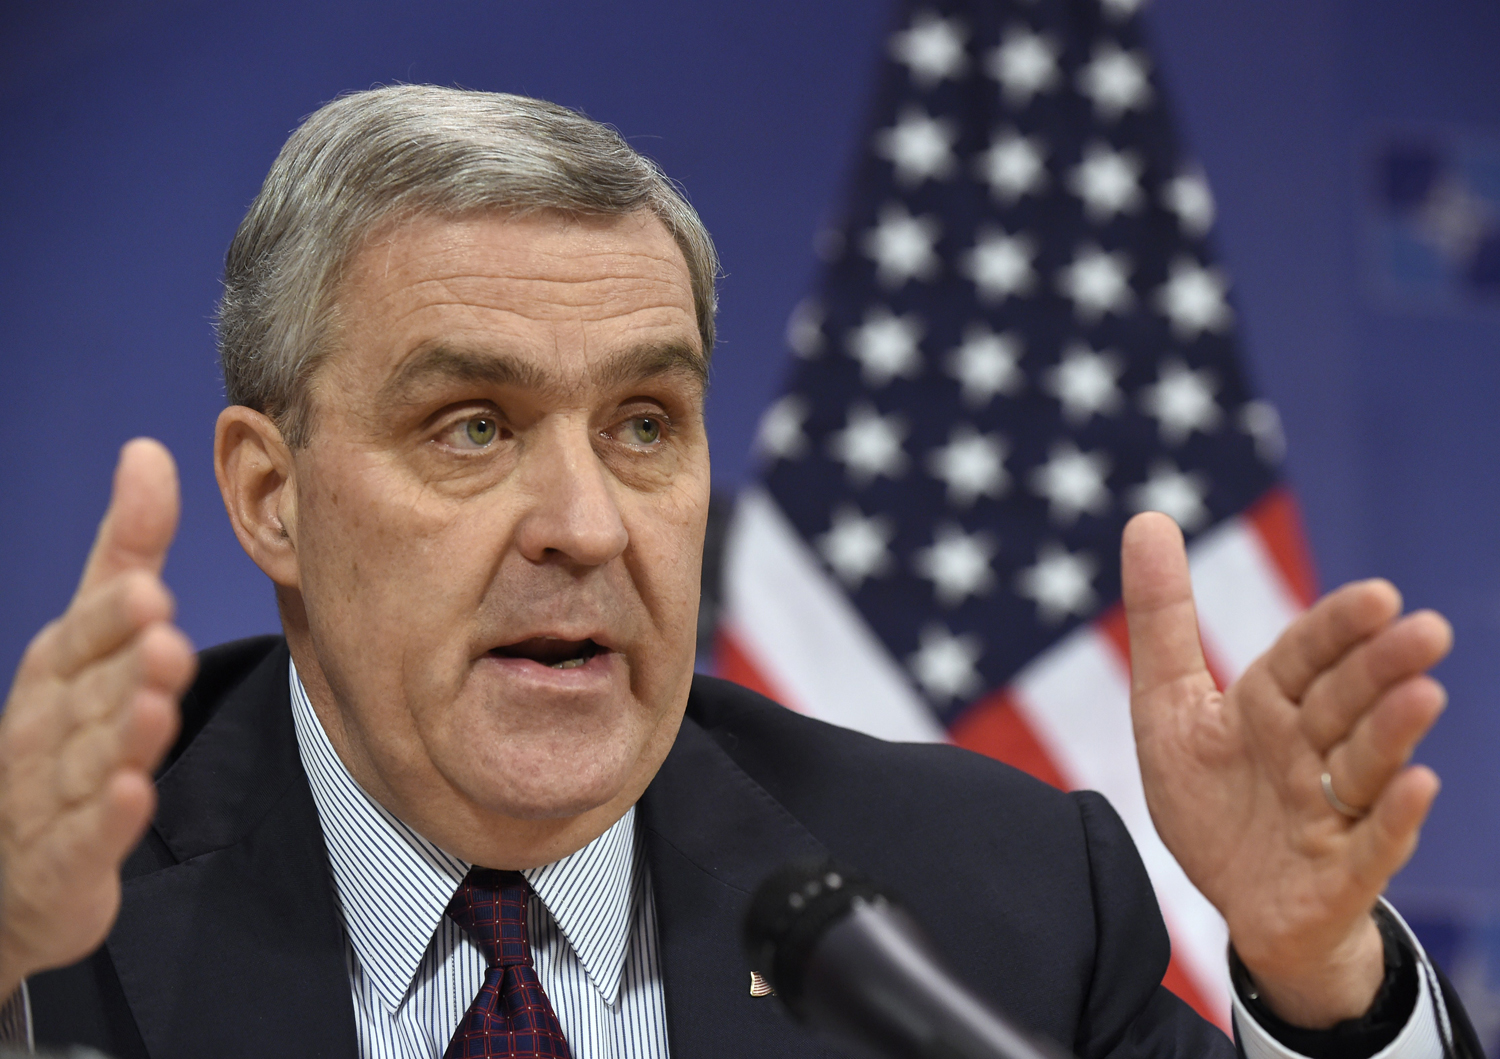 US Ambassador to NATO Douglas Lute gives a press conference on Dec. 1, 2014, at the organization's headquarters in Brussels.